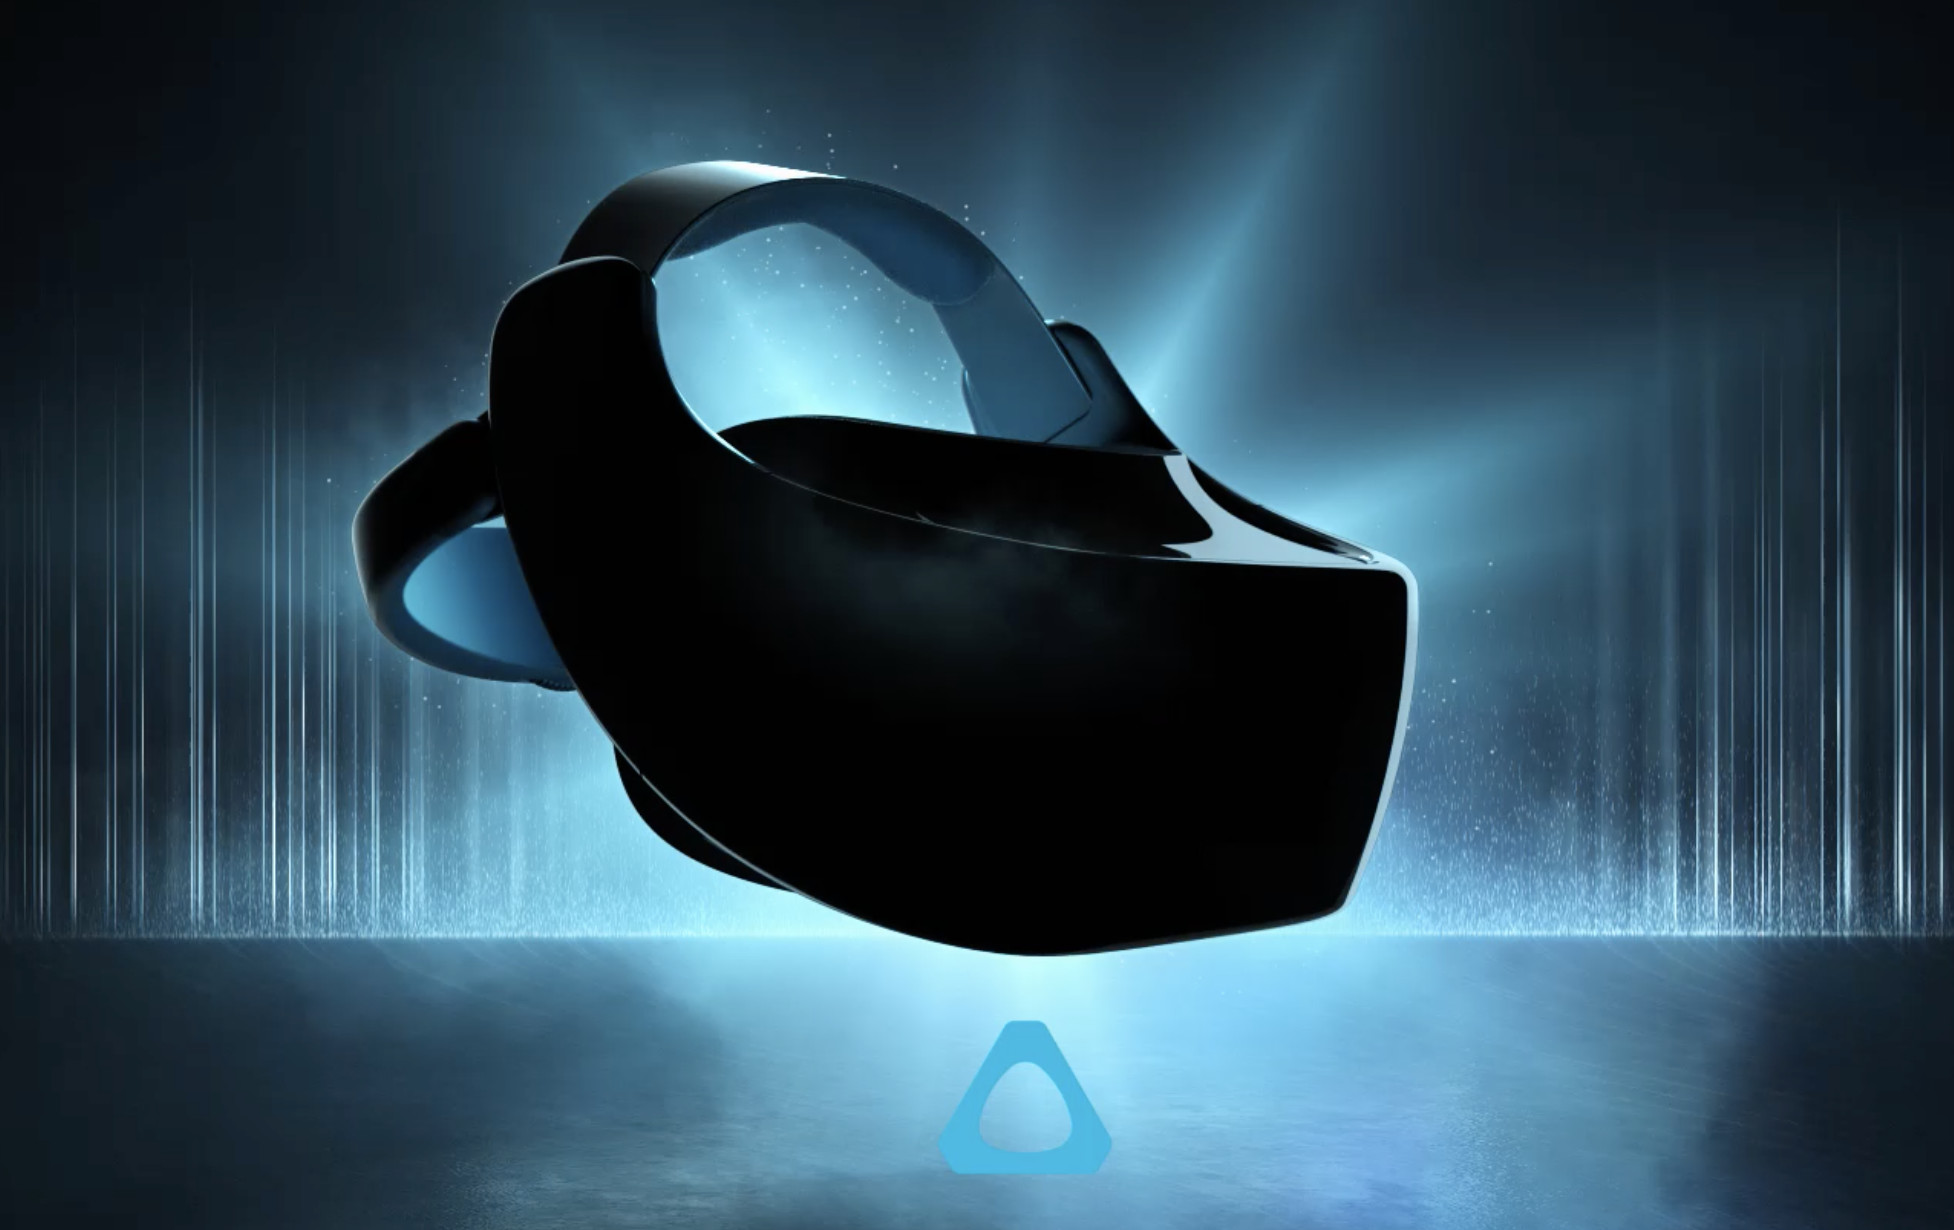 Vive Focus, its first standalone VR headset, goes